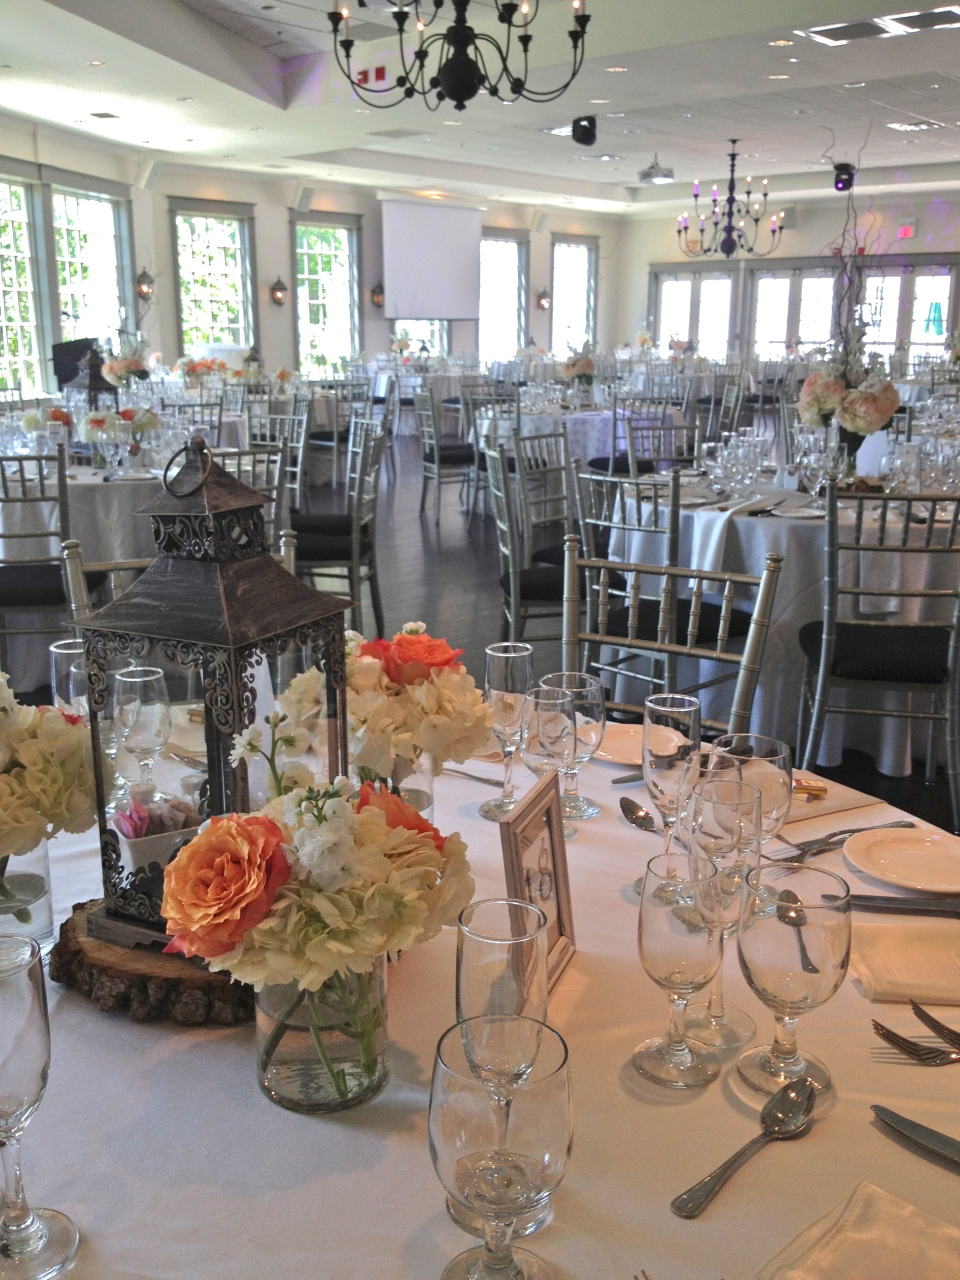 Lantern centerpieces surrounded by roses and hydrangea